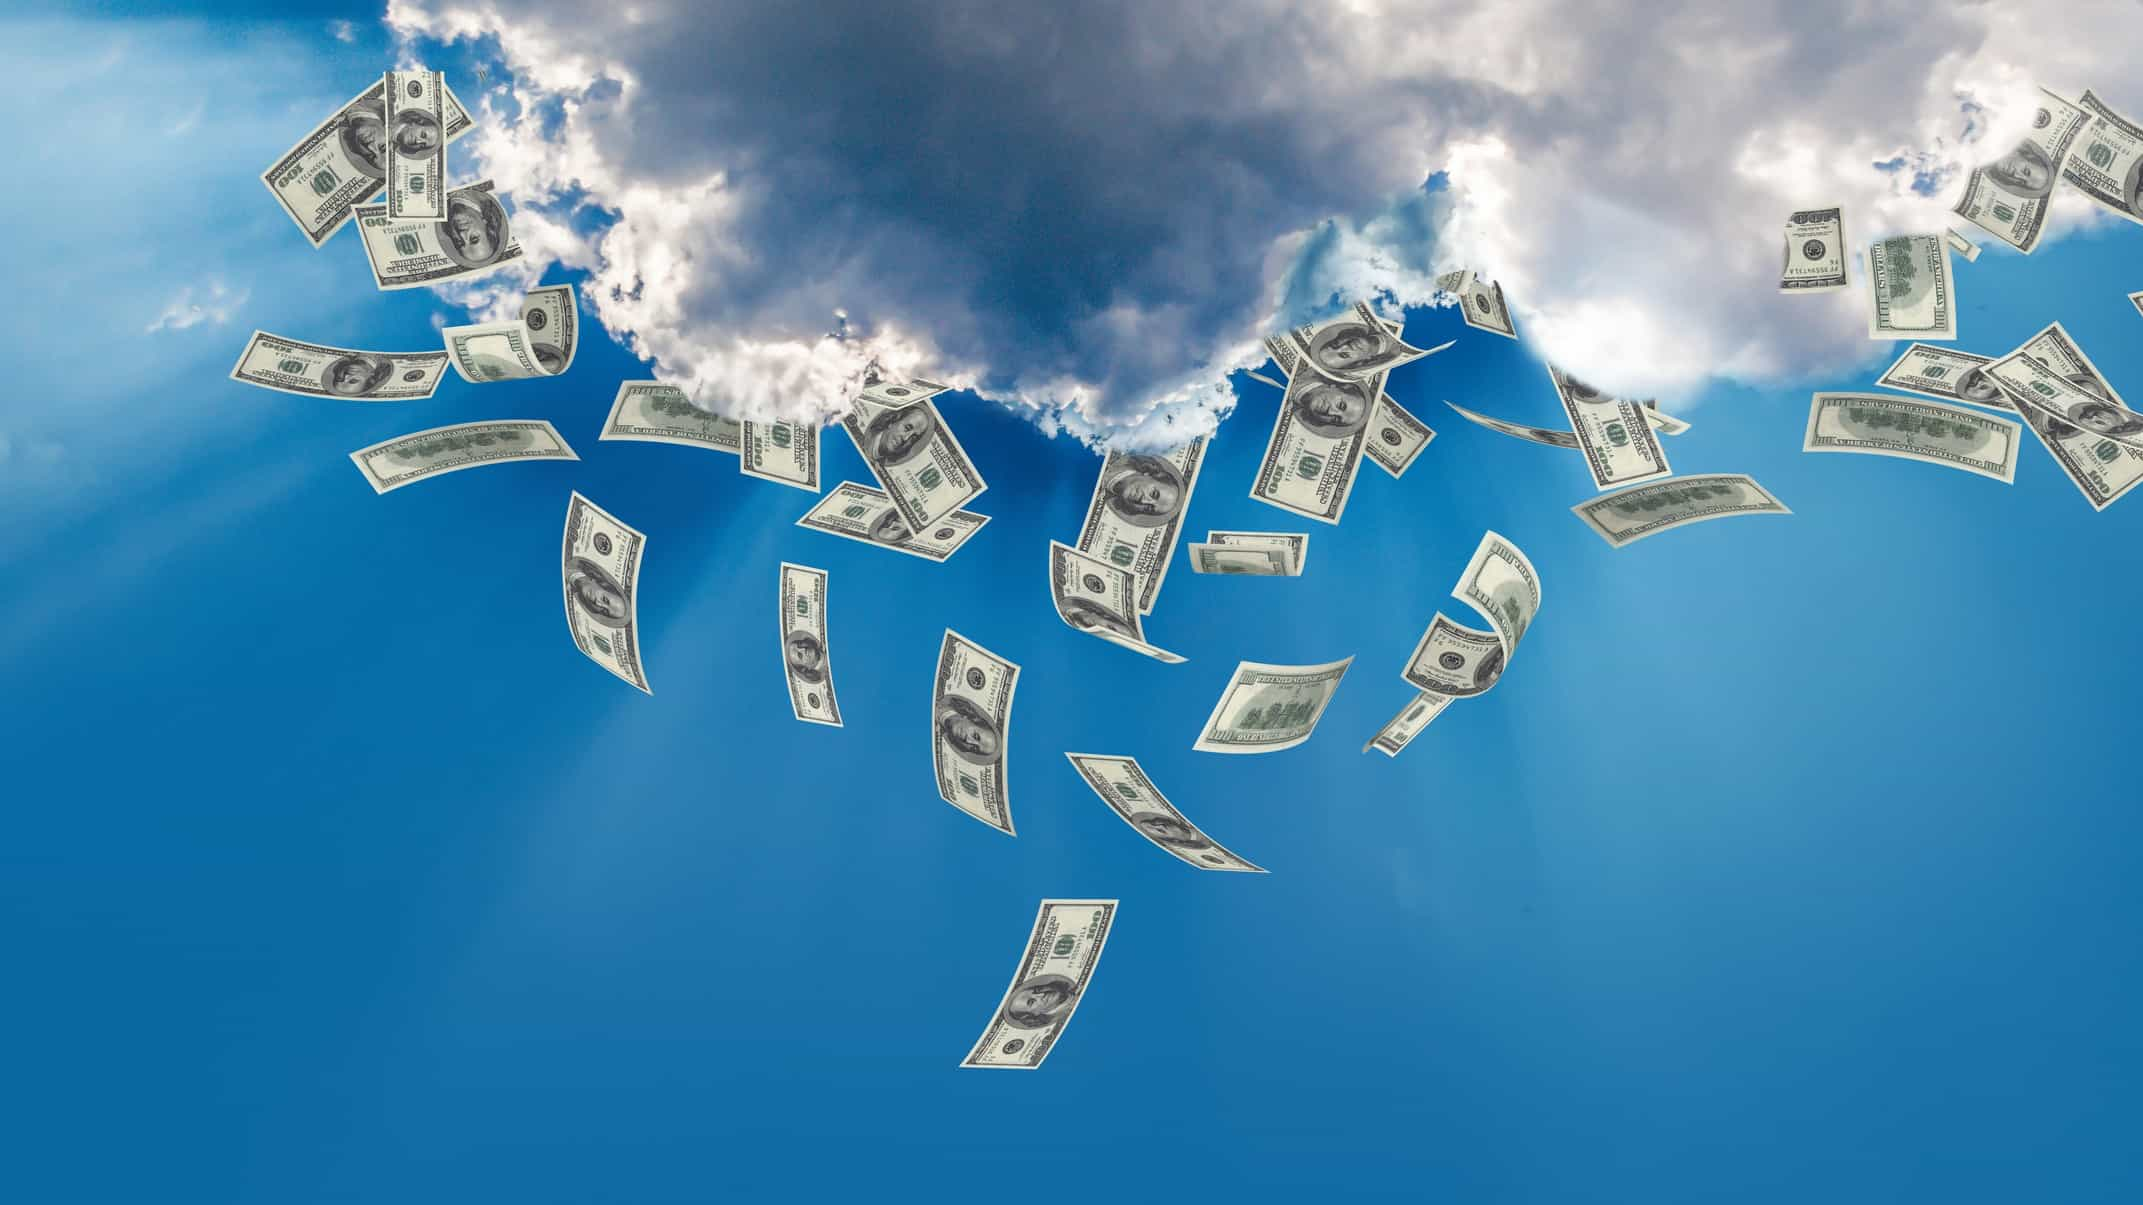 Cloud against blue sky with cash falling from it representing rich investors